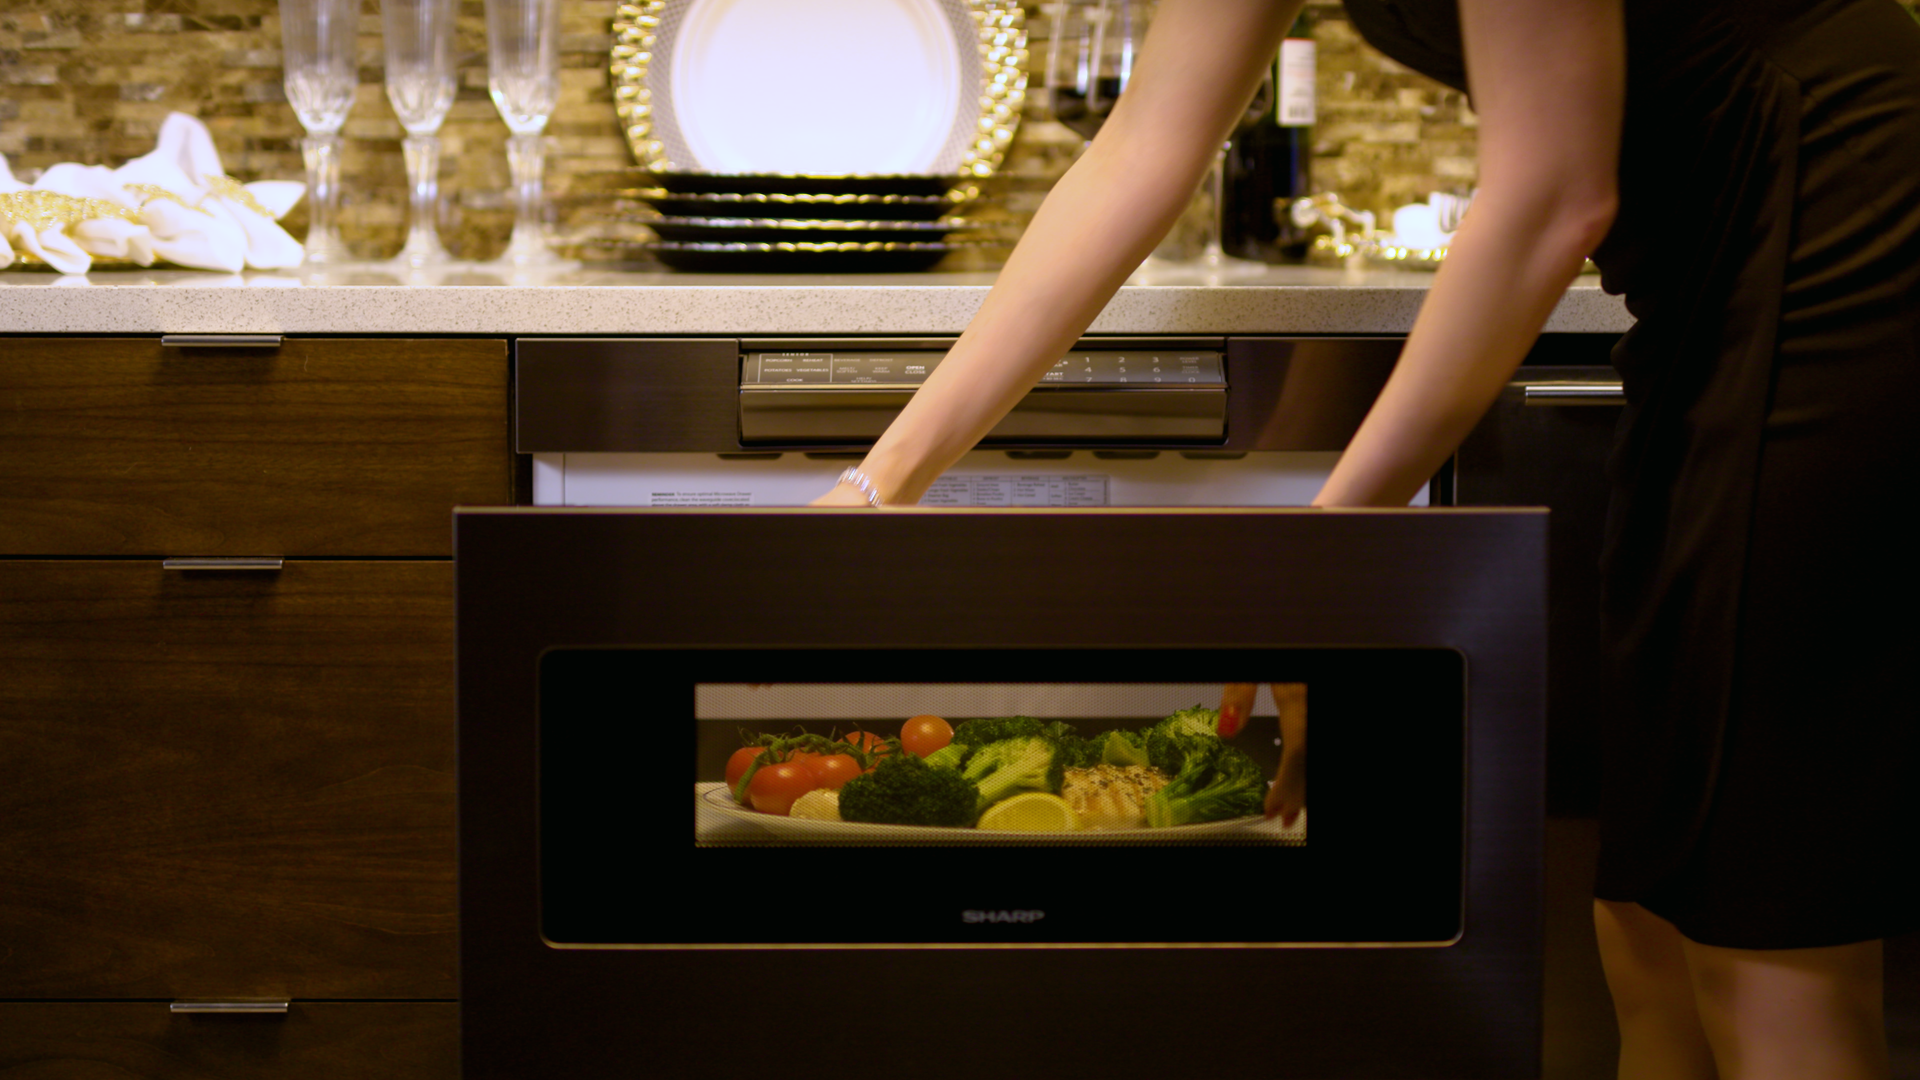 Microwave drawer is easy to access and convenient